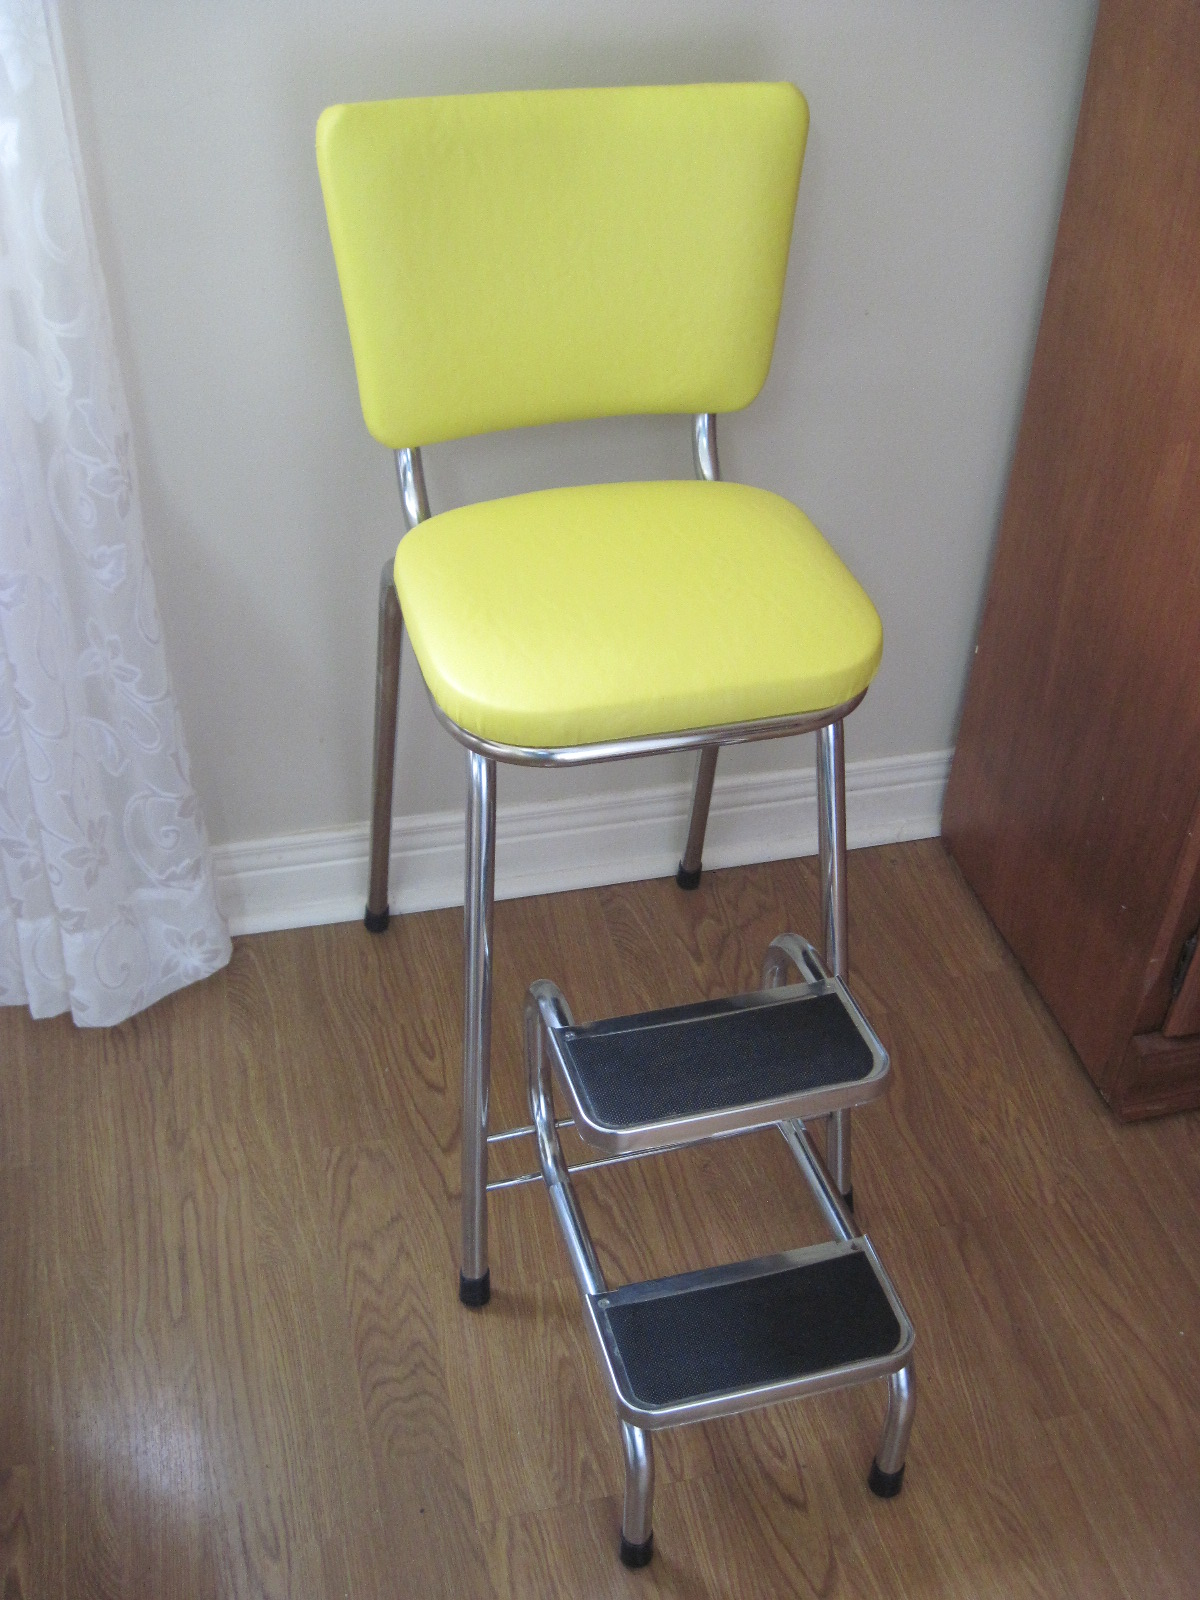 vintage furniture retro kitchen chairs IMG